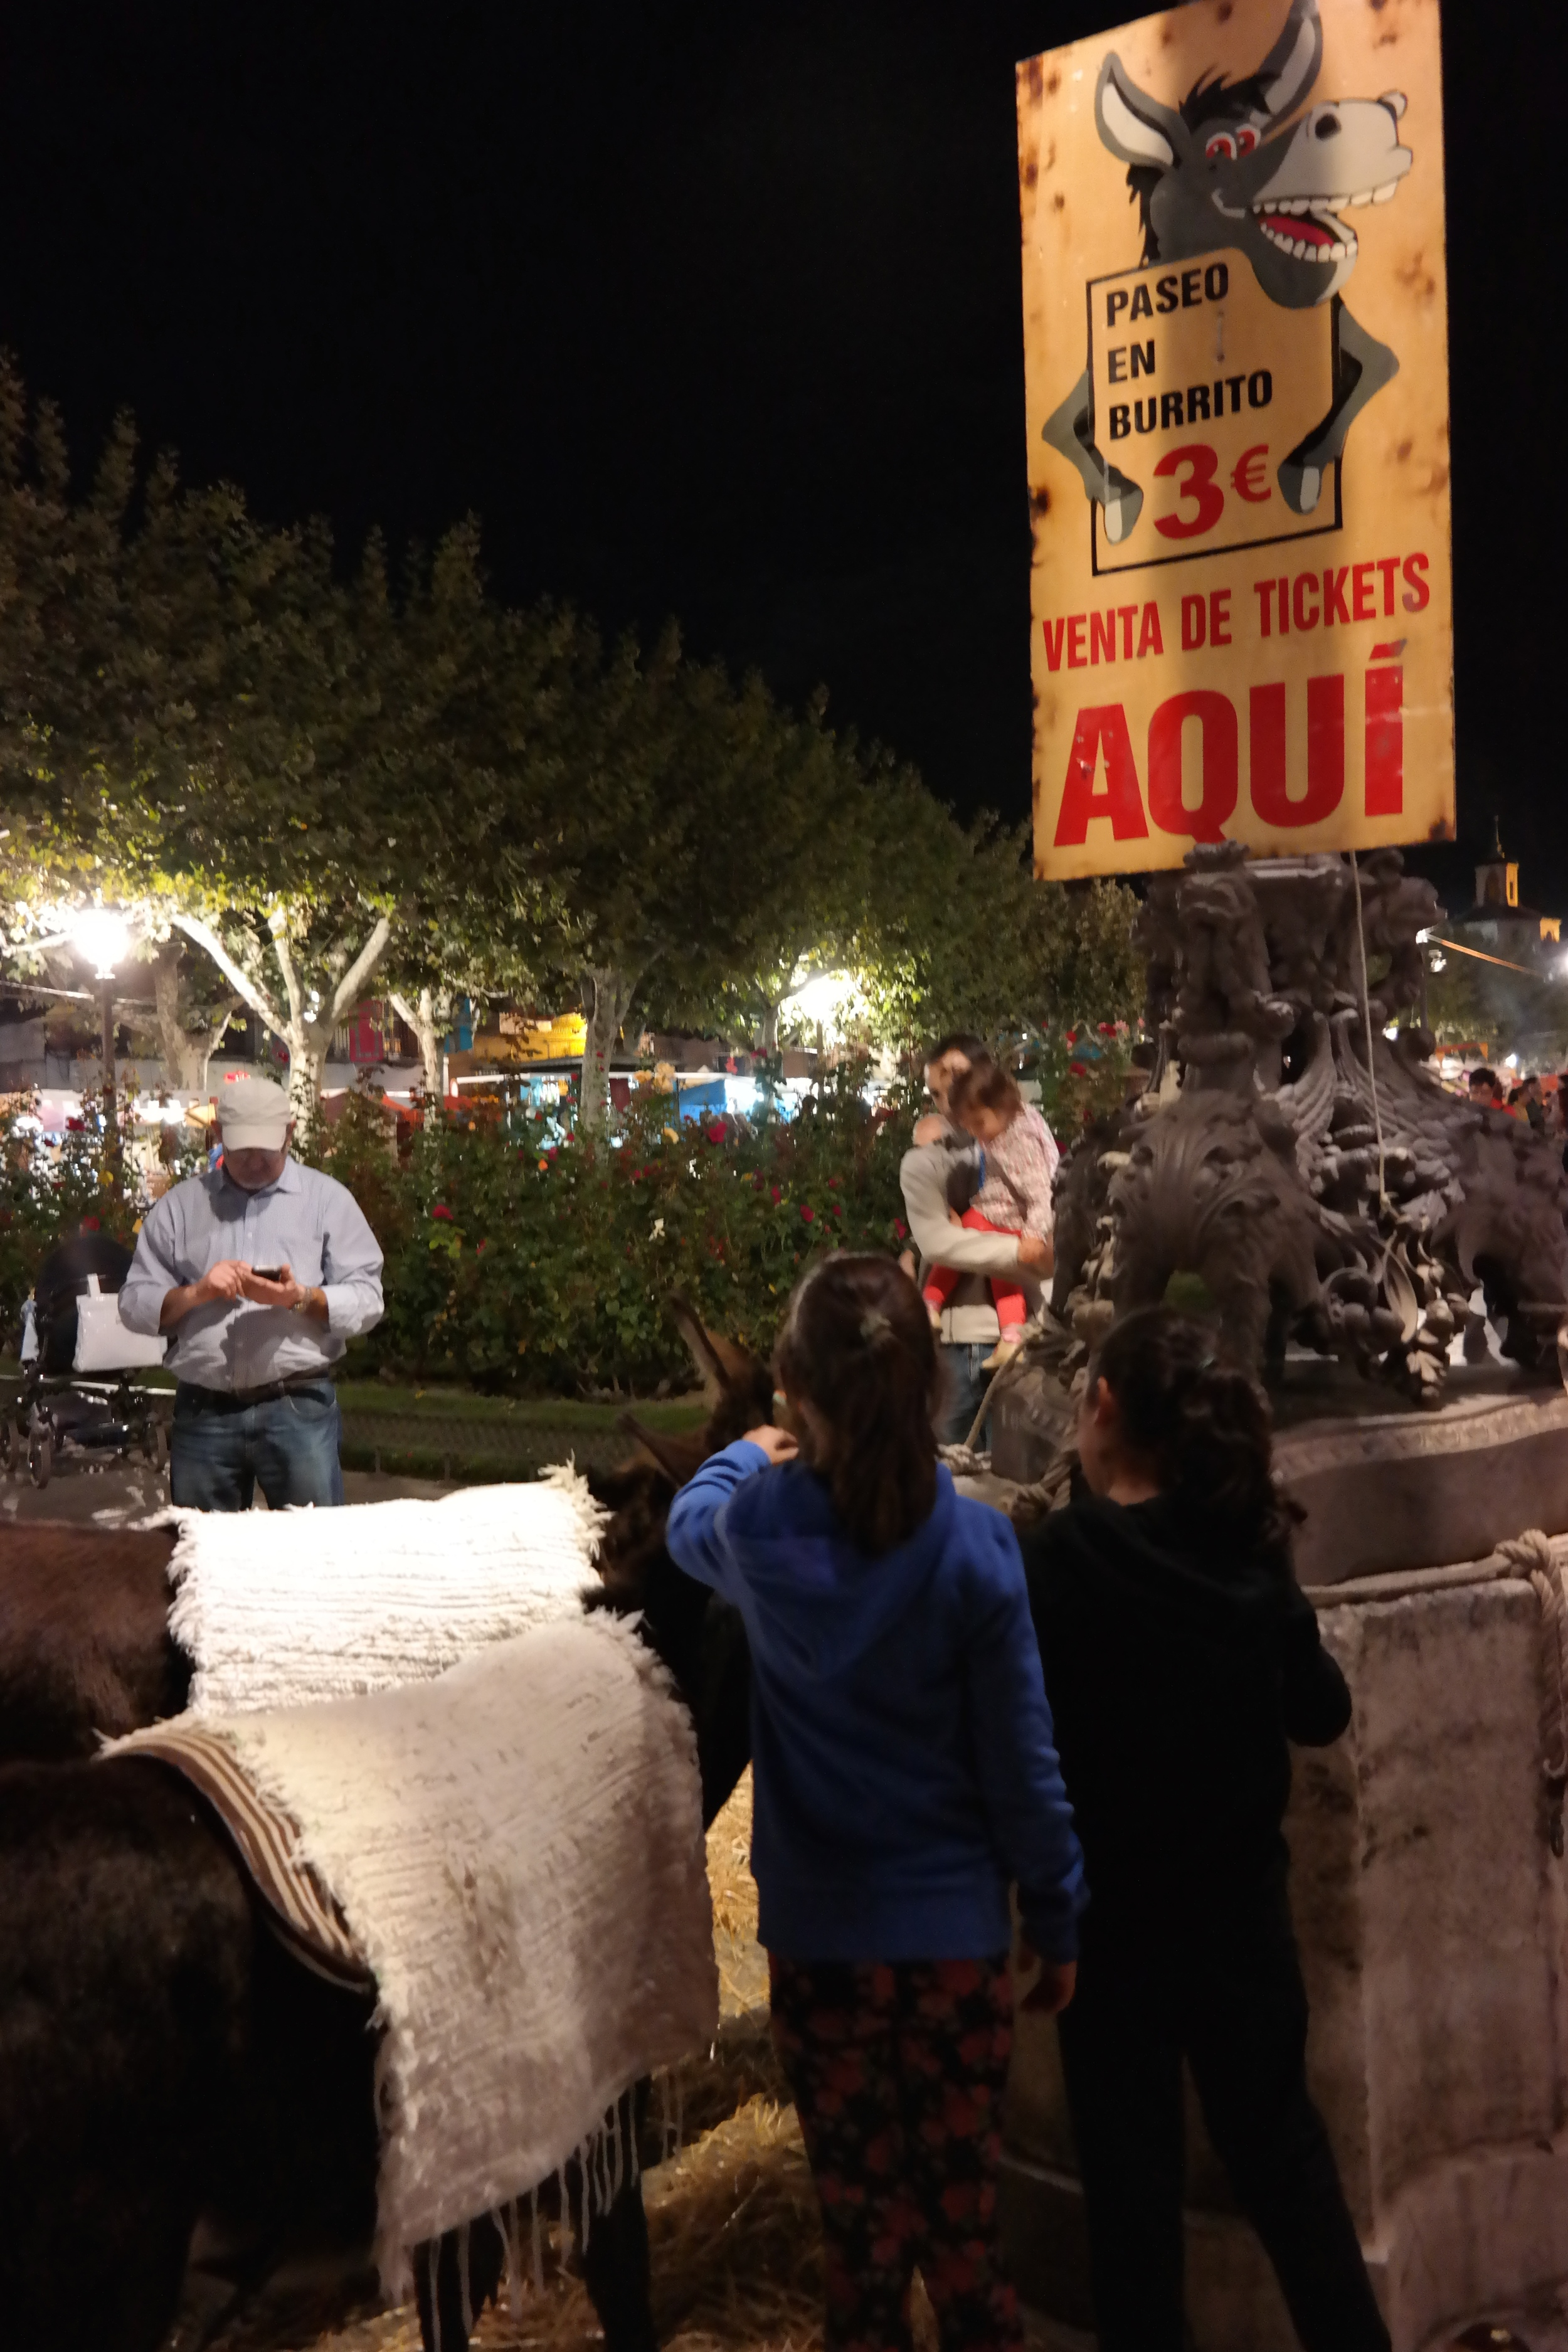 """I realize this isn't the best photo, but I had to get a picture of the """"Paseo en Burrito"""" sign (Donkey Rides). The little kiddos riding the donkeys through town were absolutely precious."""